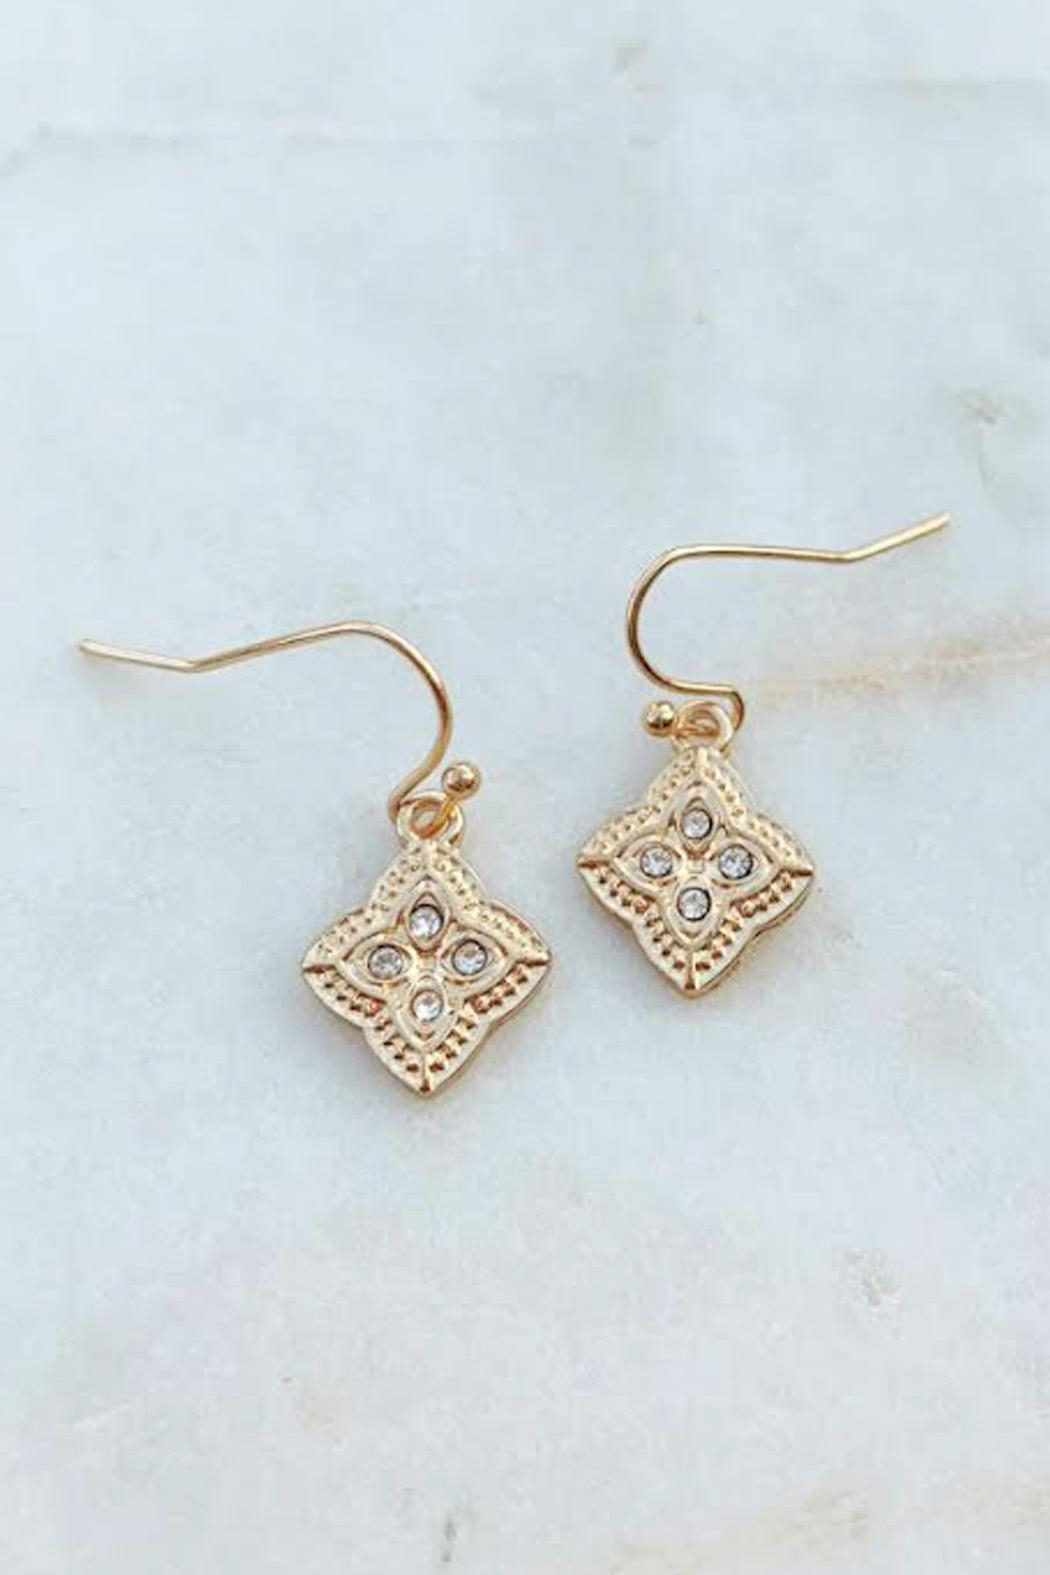 17545035a6a246 Wild Lilies Jewelry Gold Clover Earrings from Philadelphia by Wild ...